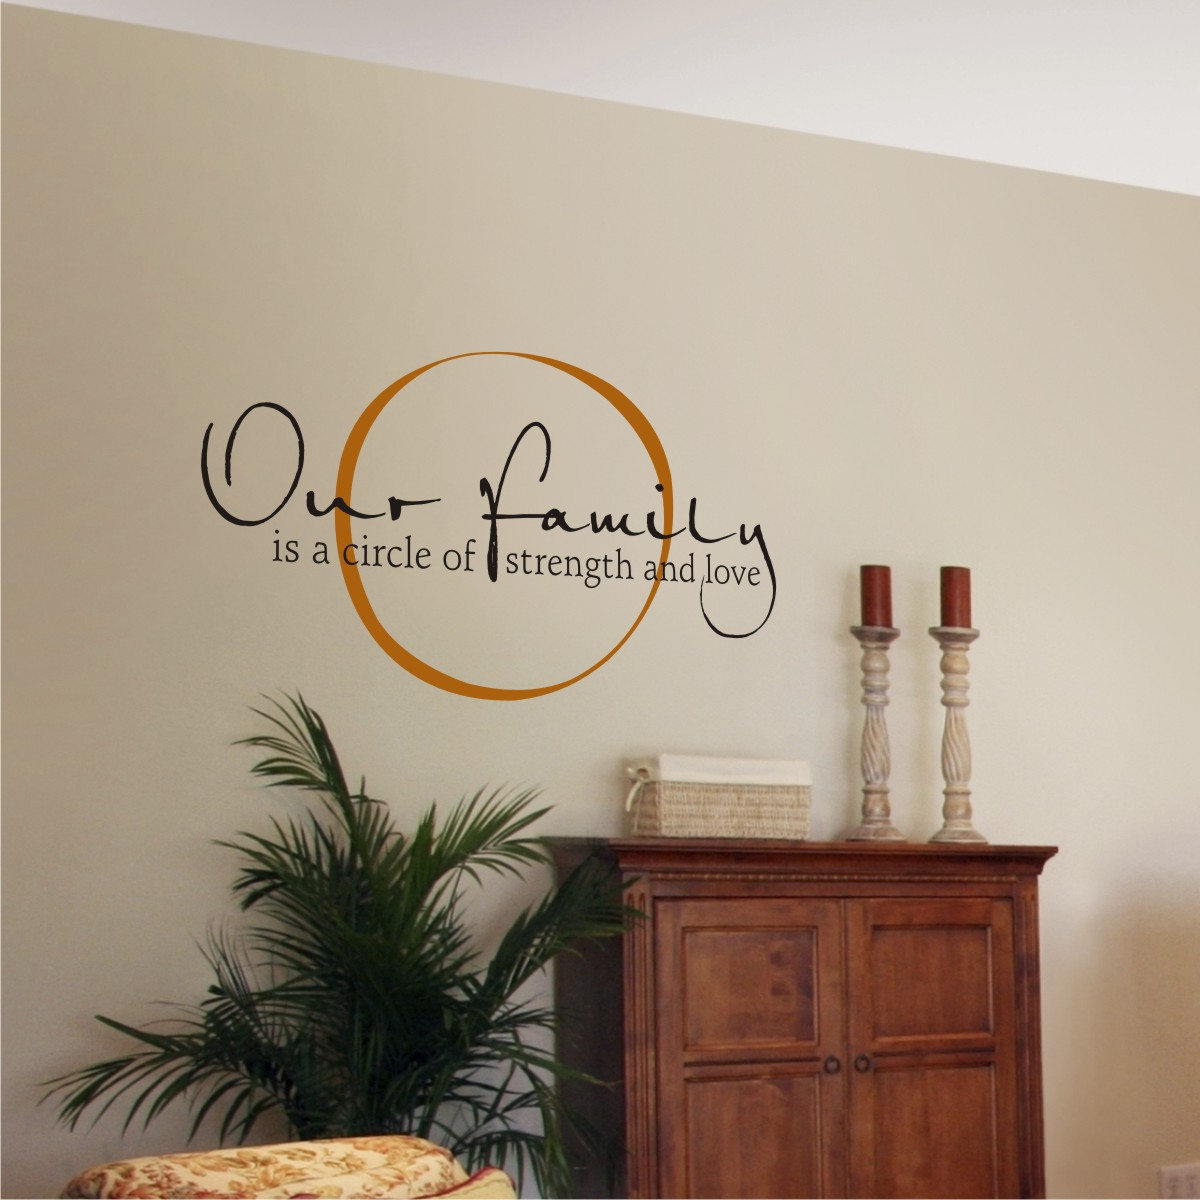 Deanna Time Wallquotes Com By Belvedere Designs